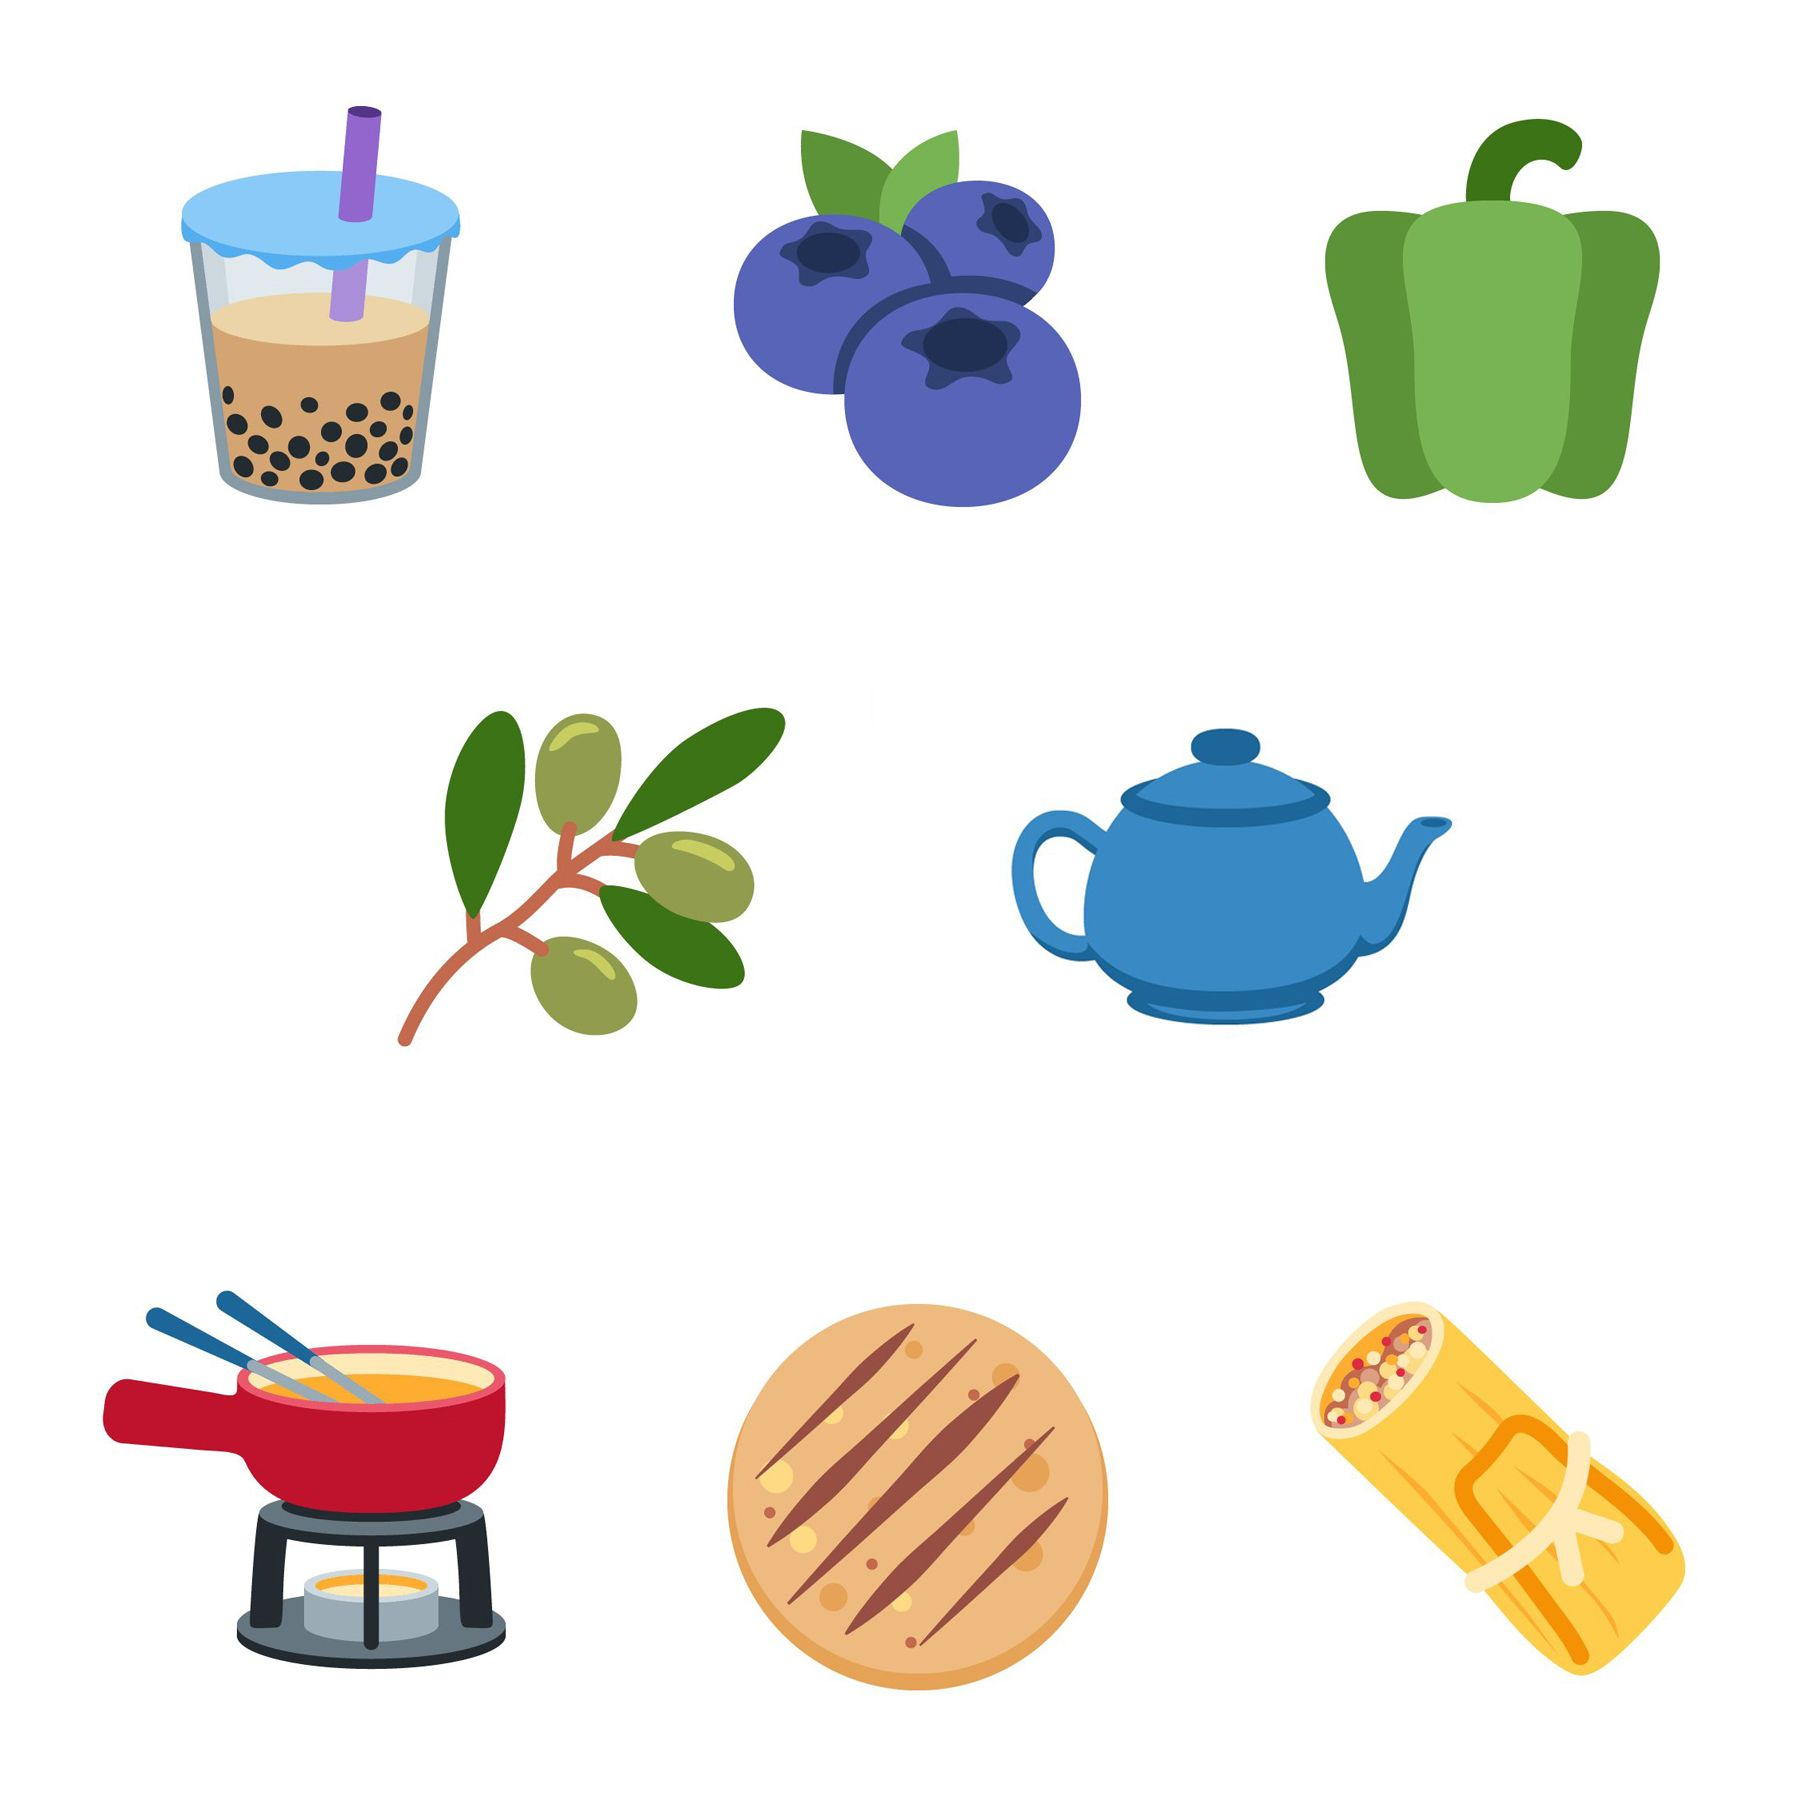 Emojipedia-Twemoji-13.0-New-Food-And-Drink-Emojis-4